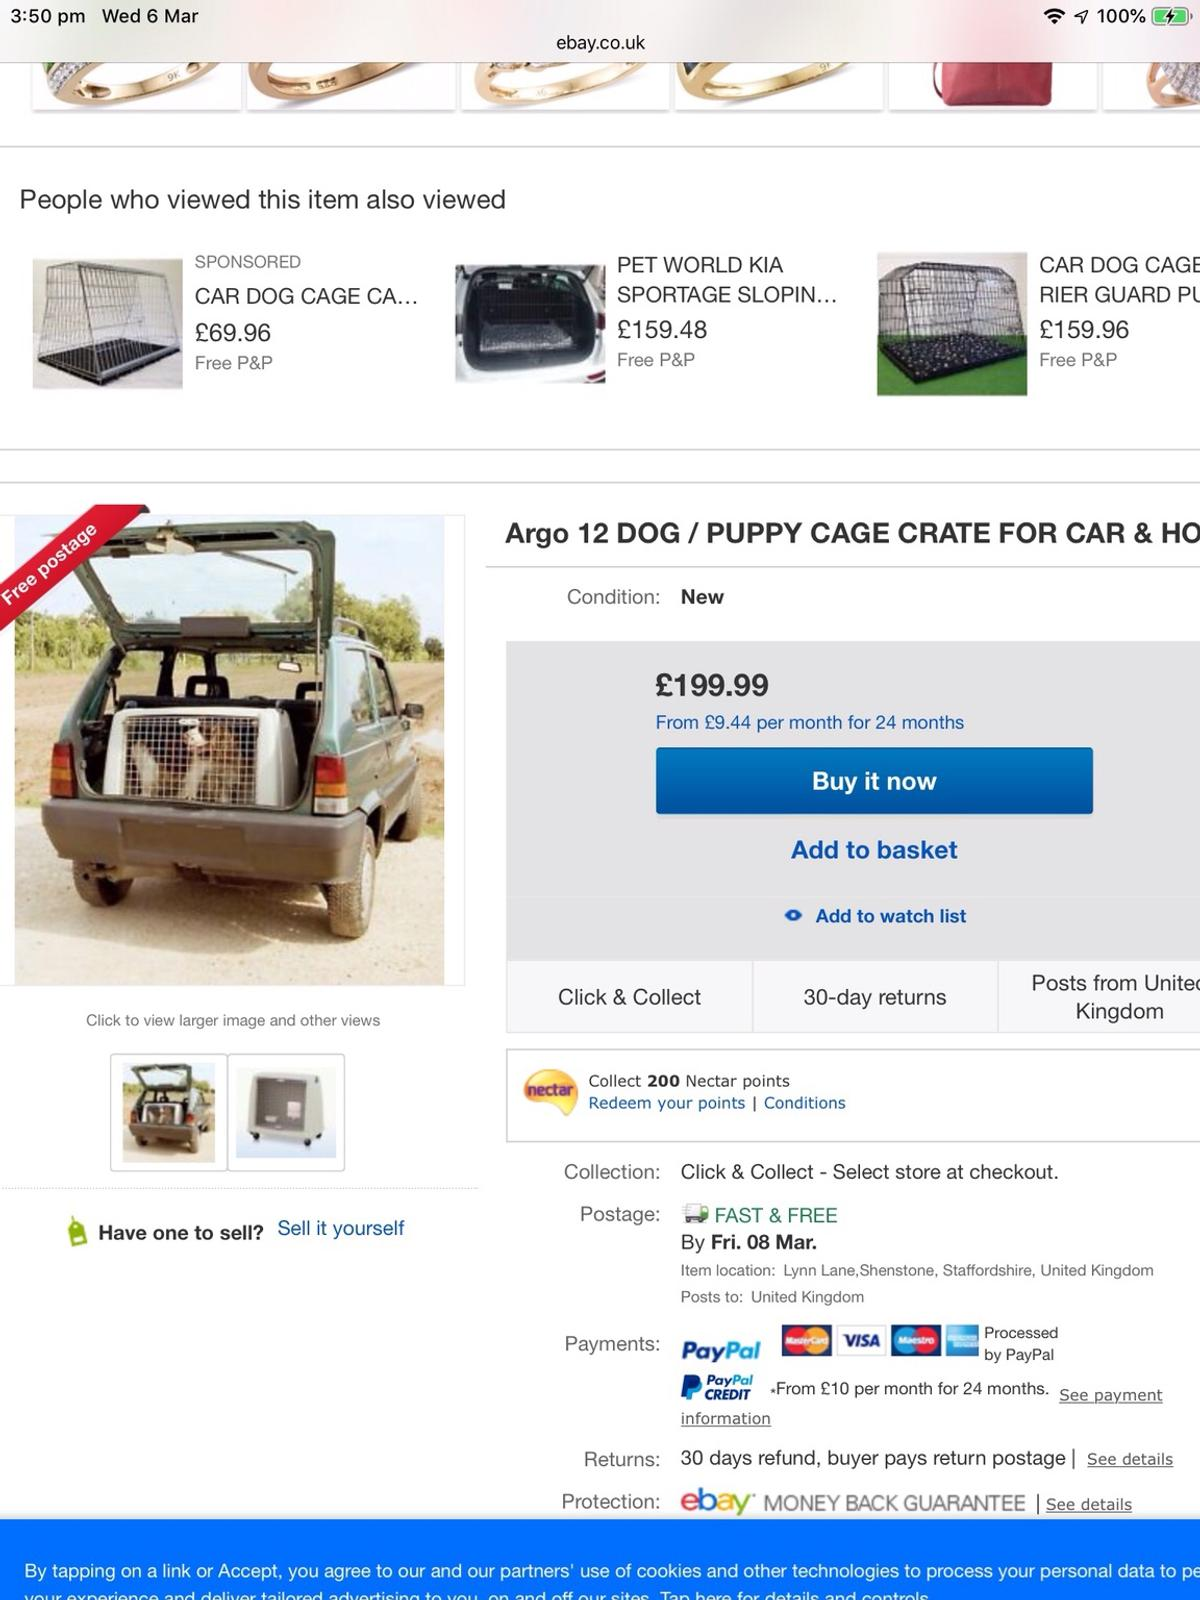 Dog crate, very good strong heavy plastic frame, only reason for sale is it doesn't fit my new car, suitable for 2 small dogs cockapoos etc or one medium size dog in excellent condition looking for £70 as you can see from the picture they cost a lot more